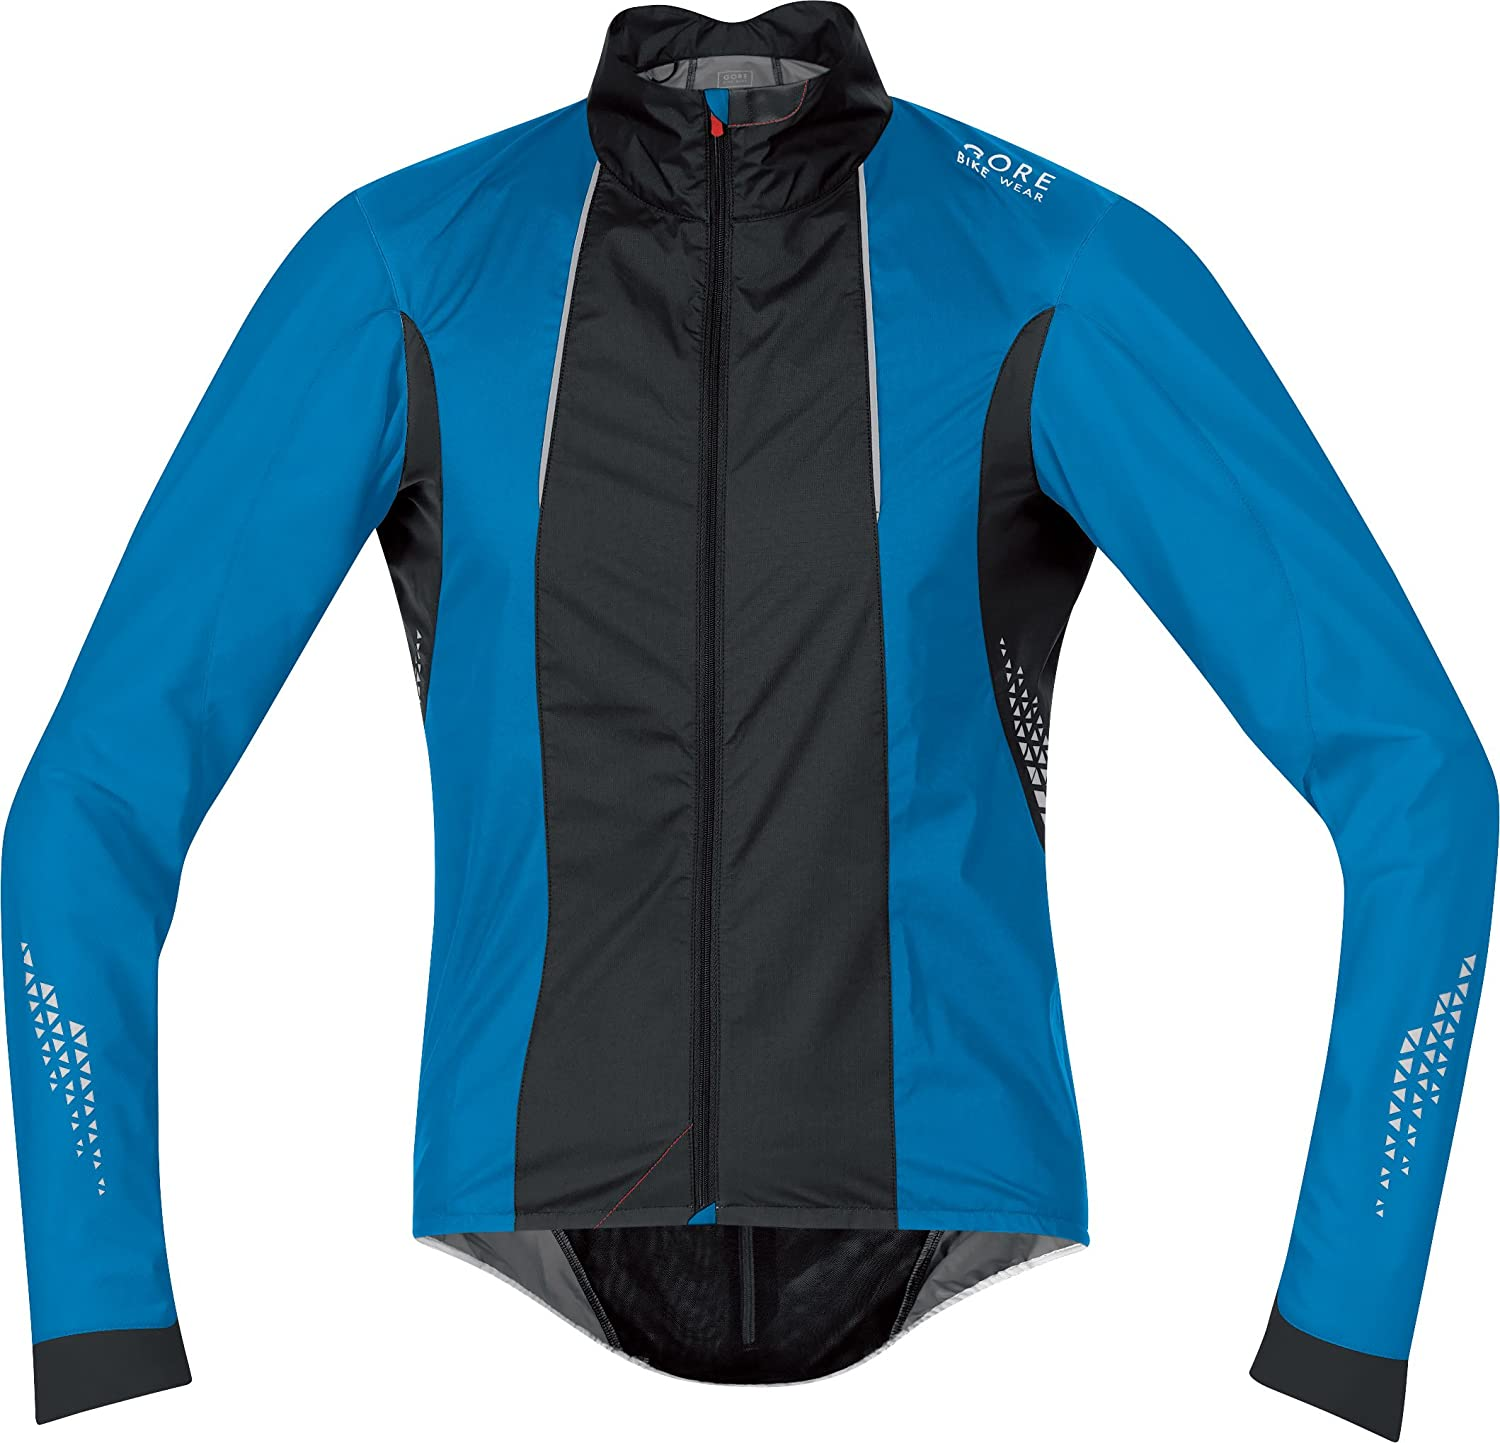 GORE BIKE WEAR Herren winddichte Rennradjacke, WINDSTOPPER Active Shell, Xenon 2.0 AS, JWXENA